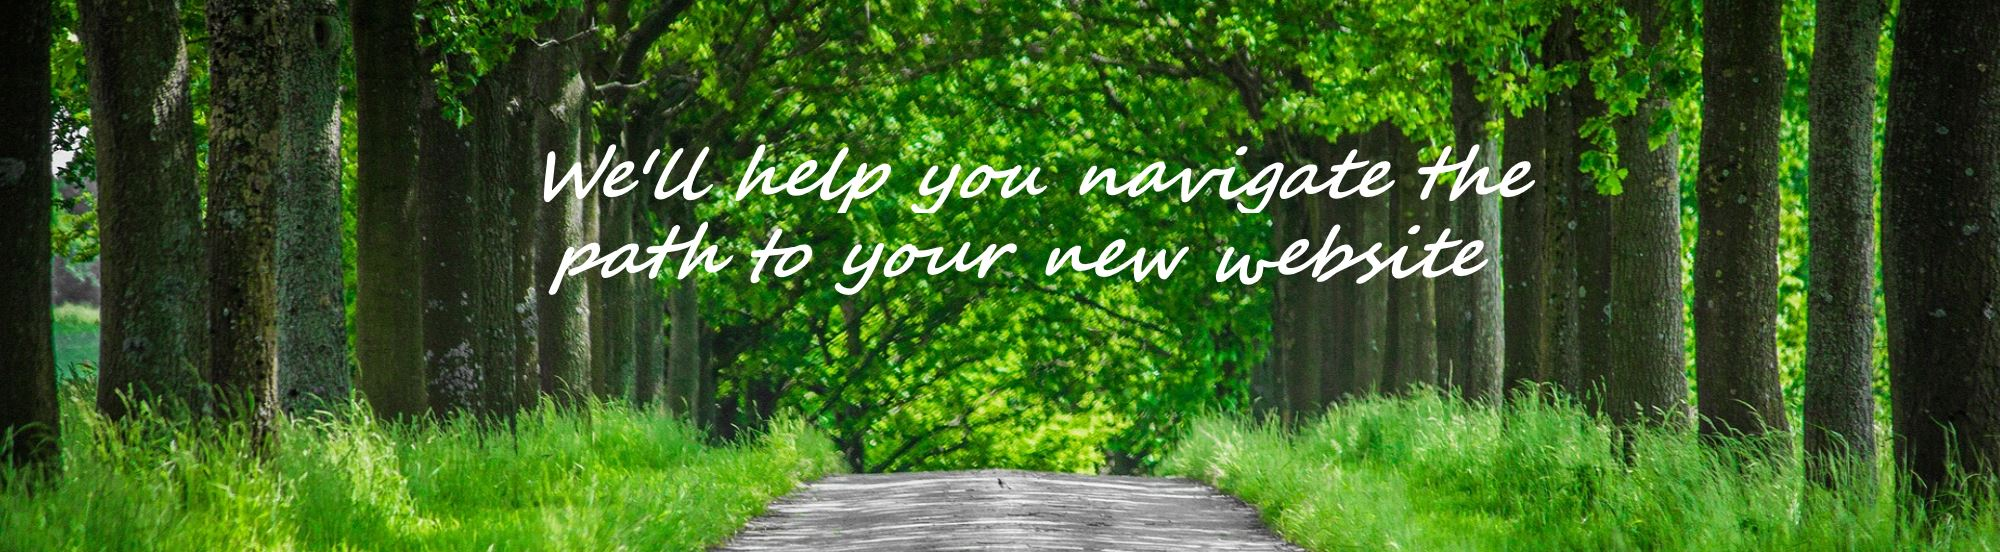 let us help you navigate the path to your new website